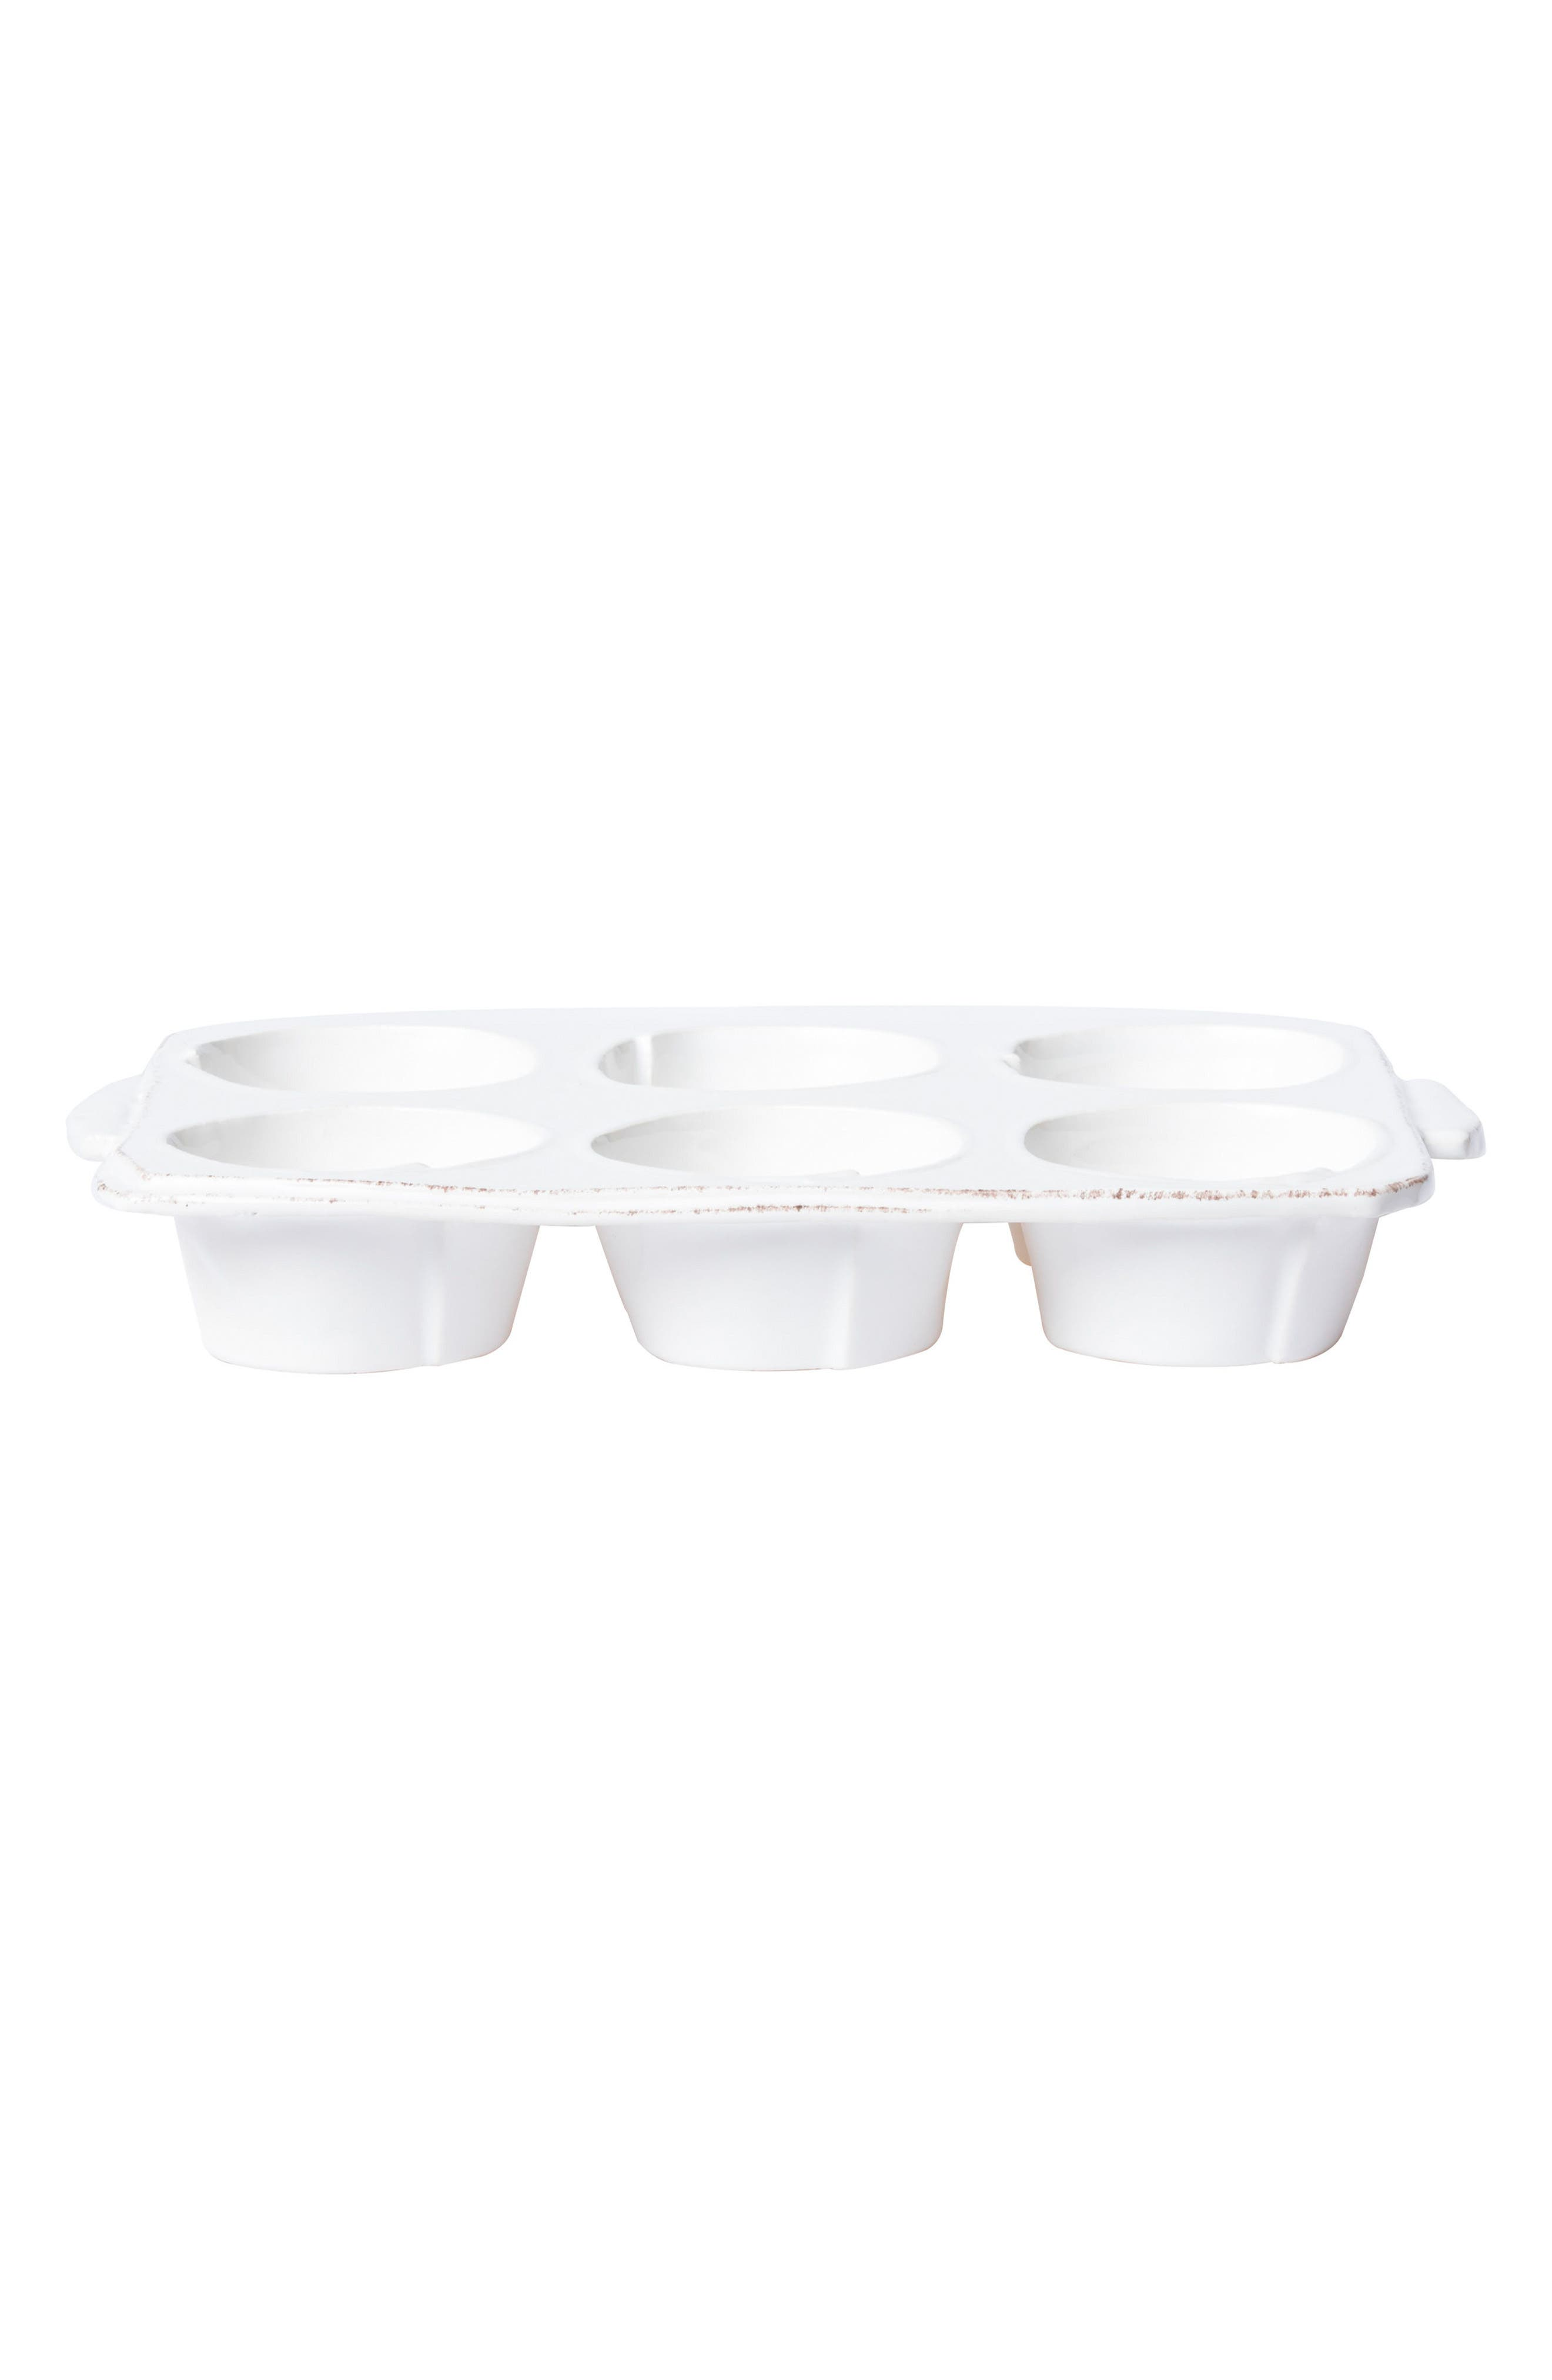 Lastra Stoneware Muffin Tray,                             Main thumbnail 1, color,                             WHITE